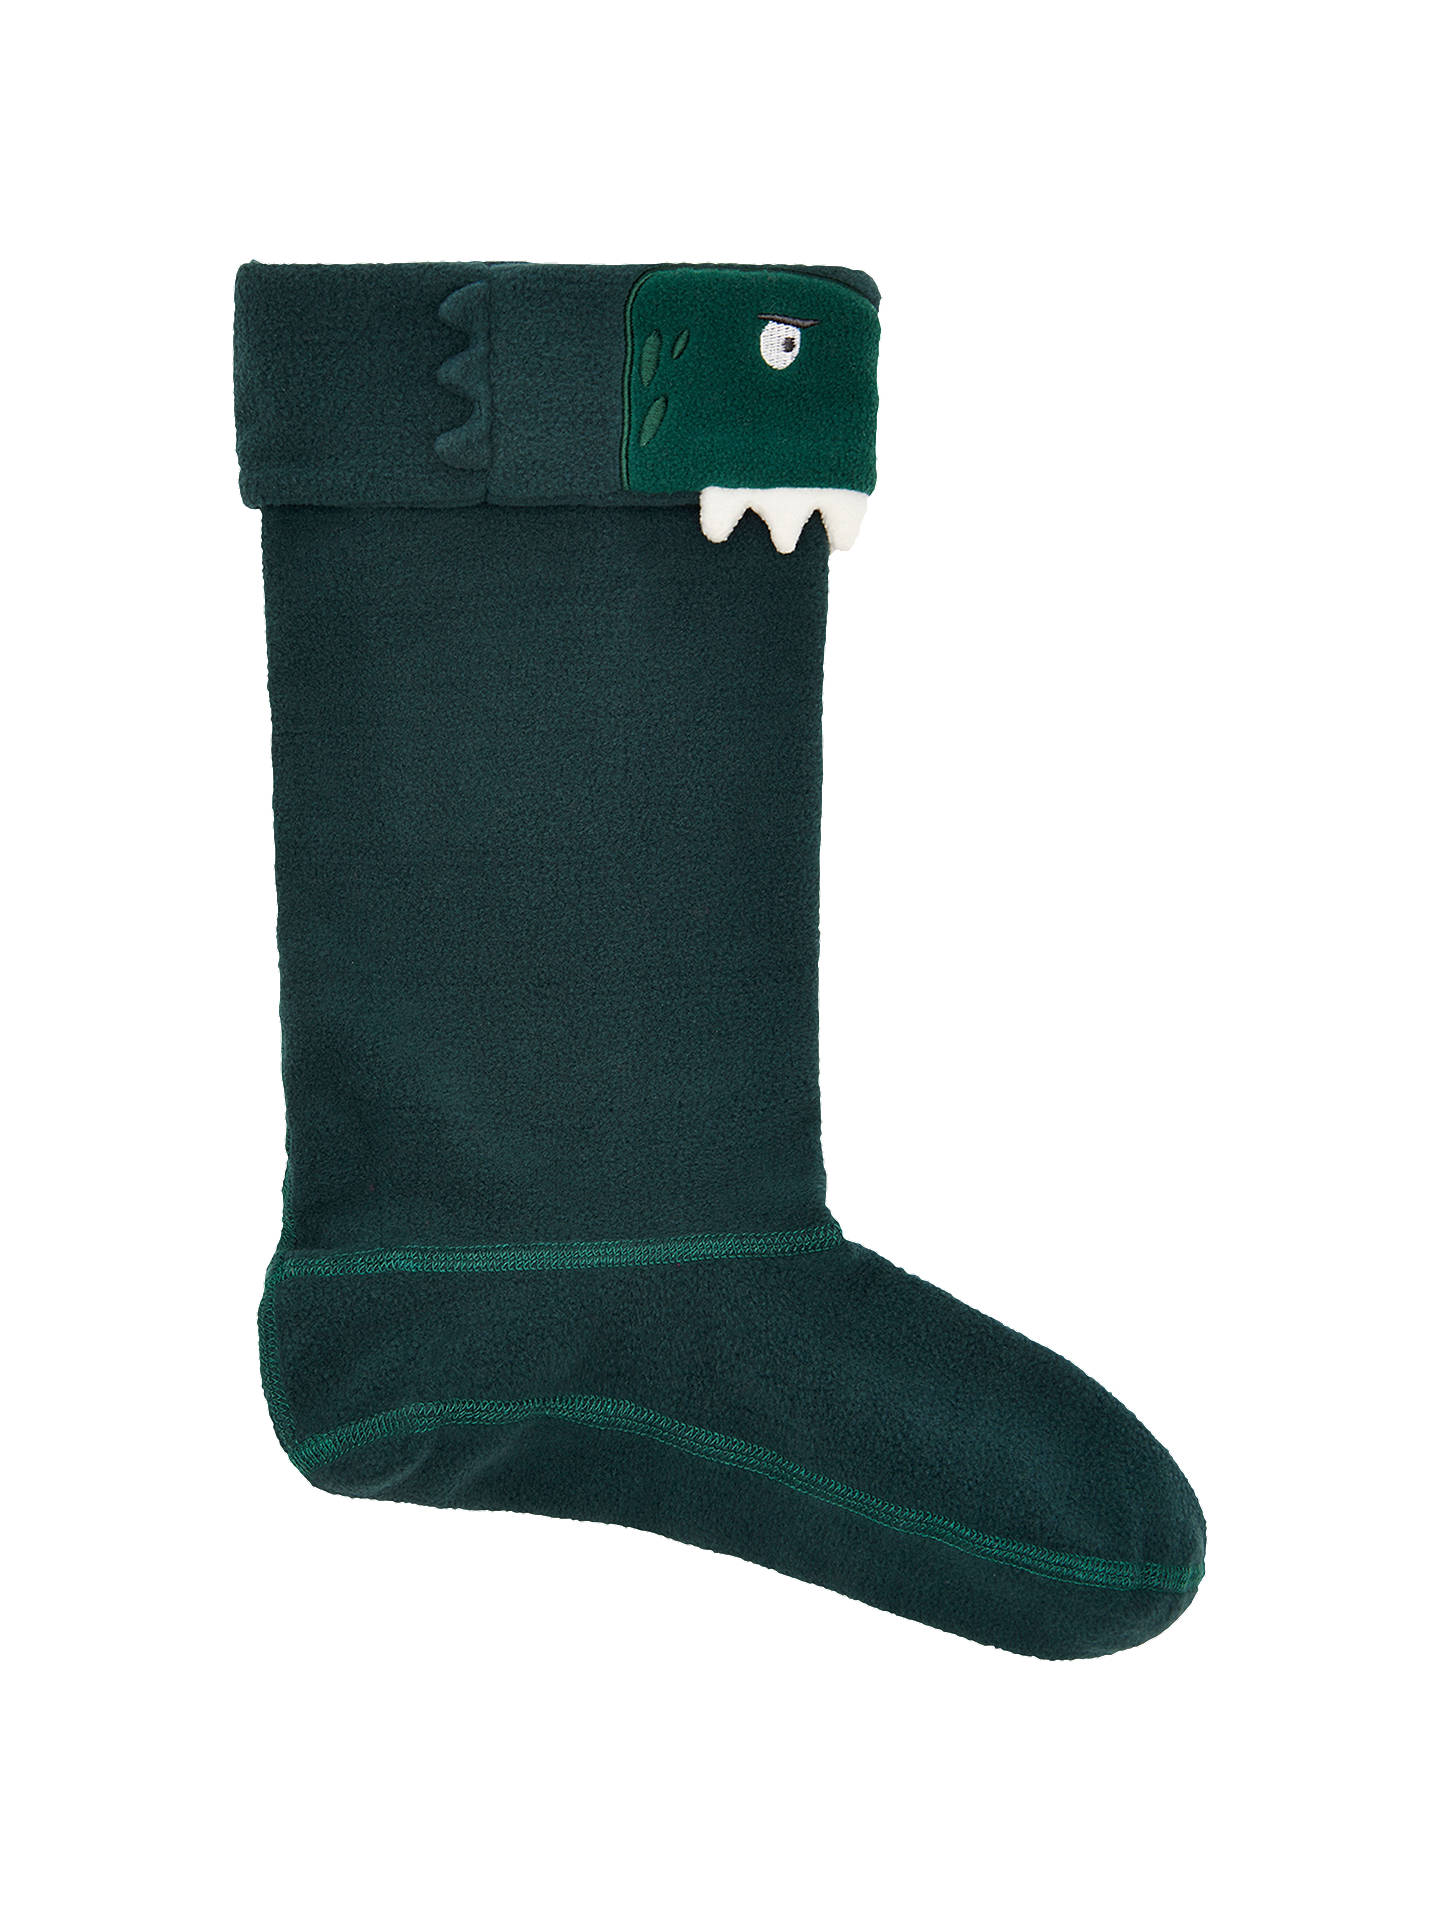 Buy Baby Joule Dinosaur Welly Socks, Green, 8-10 Jnr Online at johnlewis.com